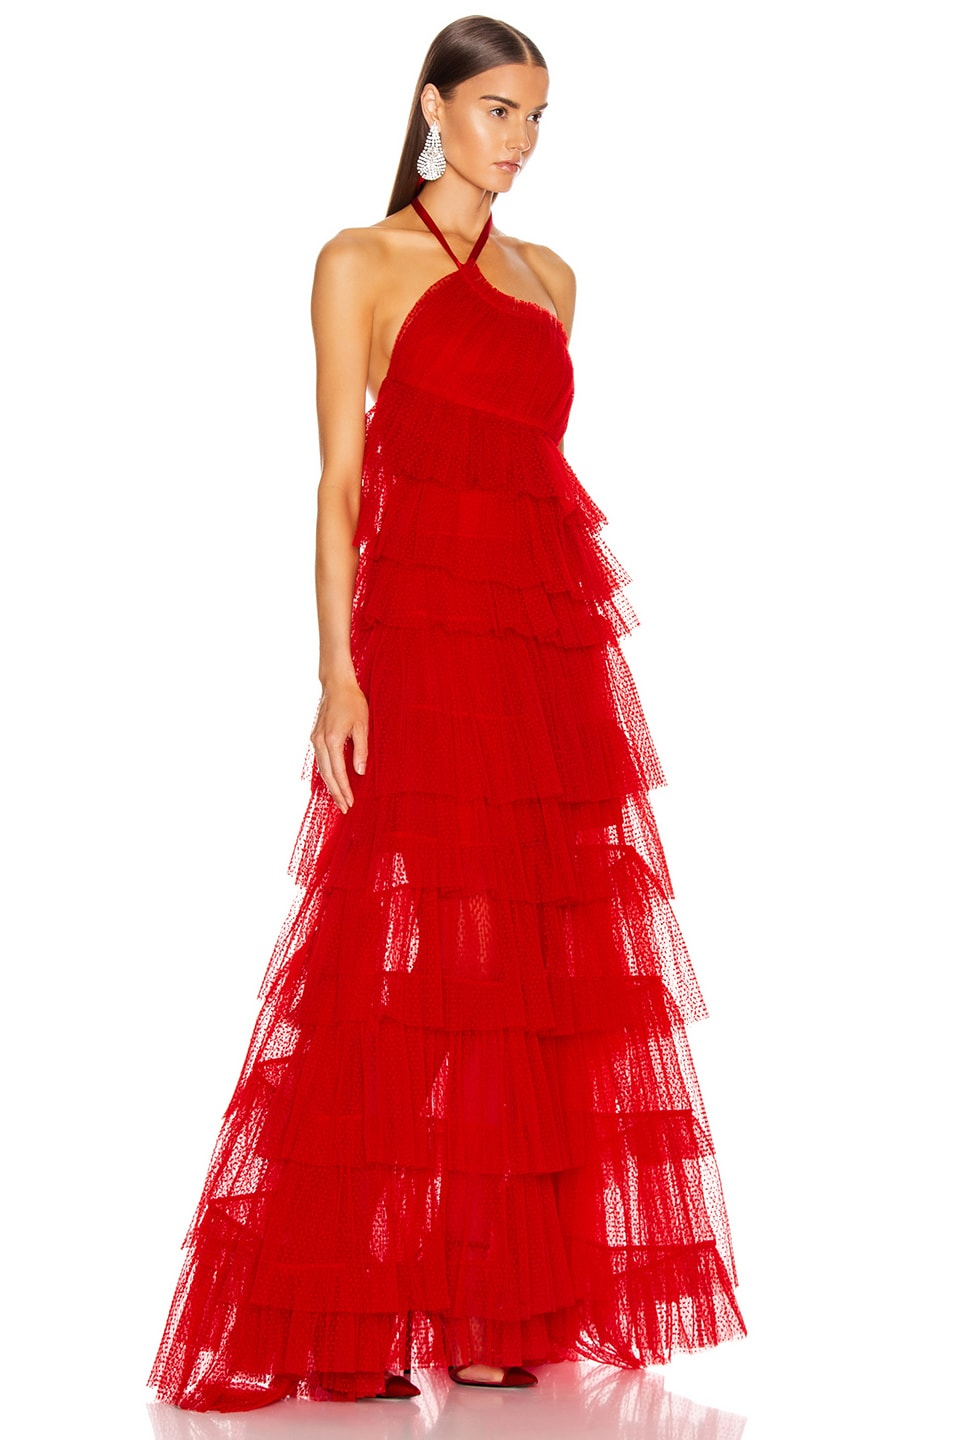 Image 2 of Alexis Justinia Dress in Cherry